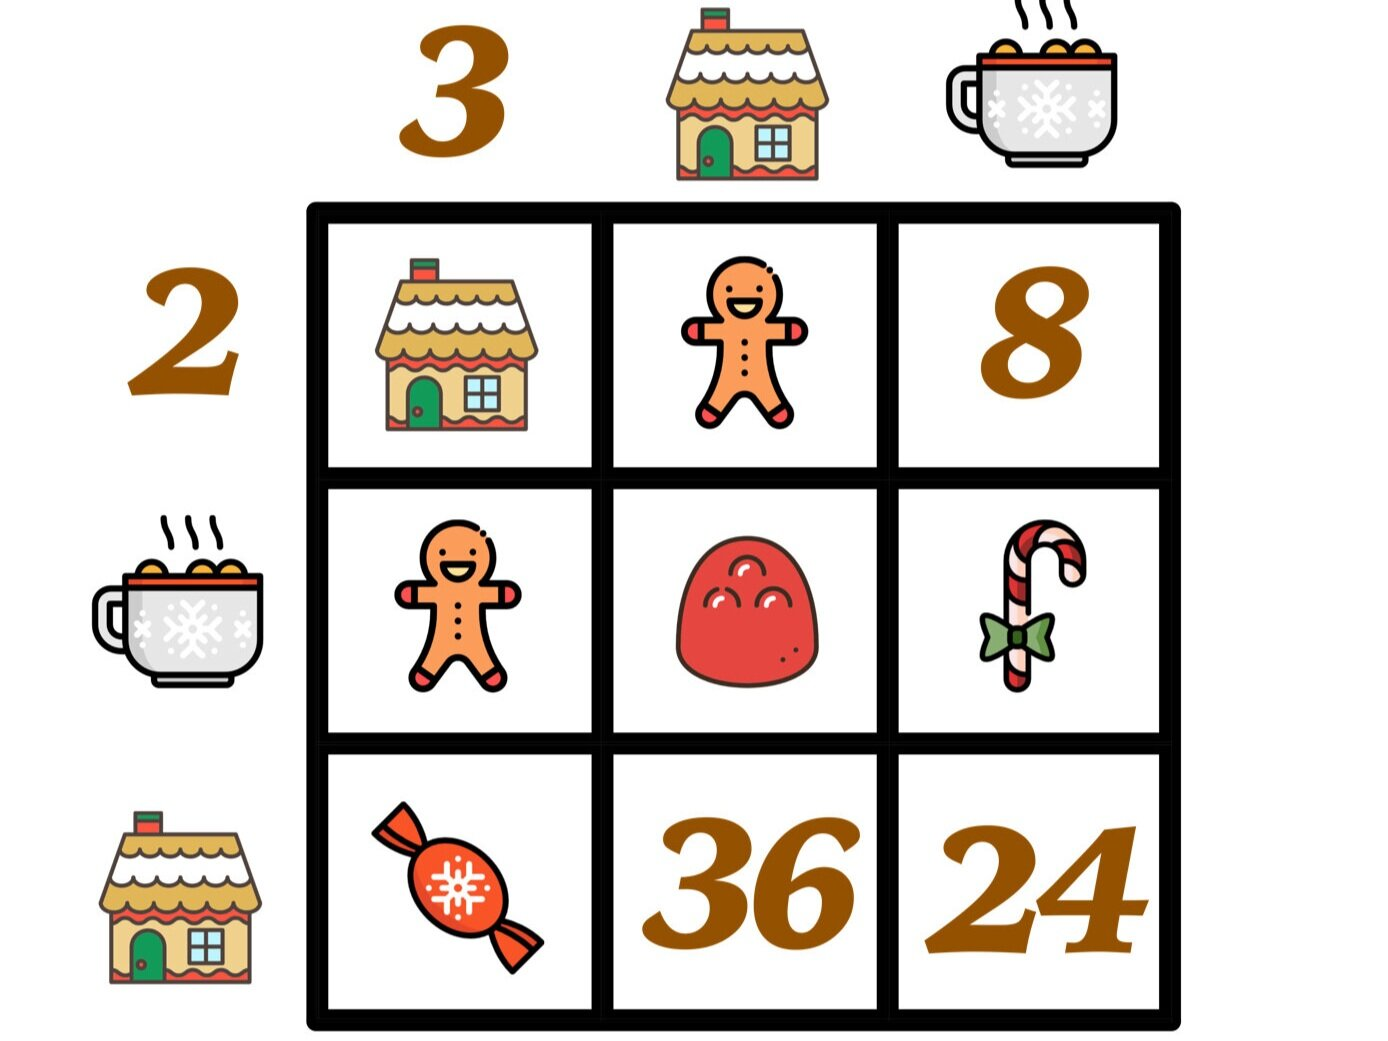 medium resolution of Are Your Students Ready for These Gingerbread House Day Math Puzzles? —  Mashup Math